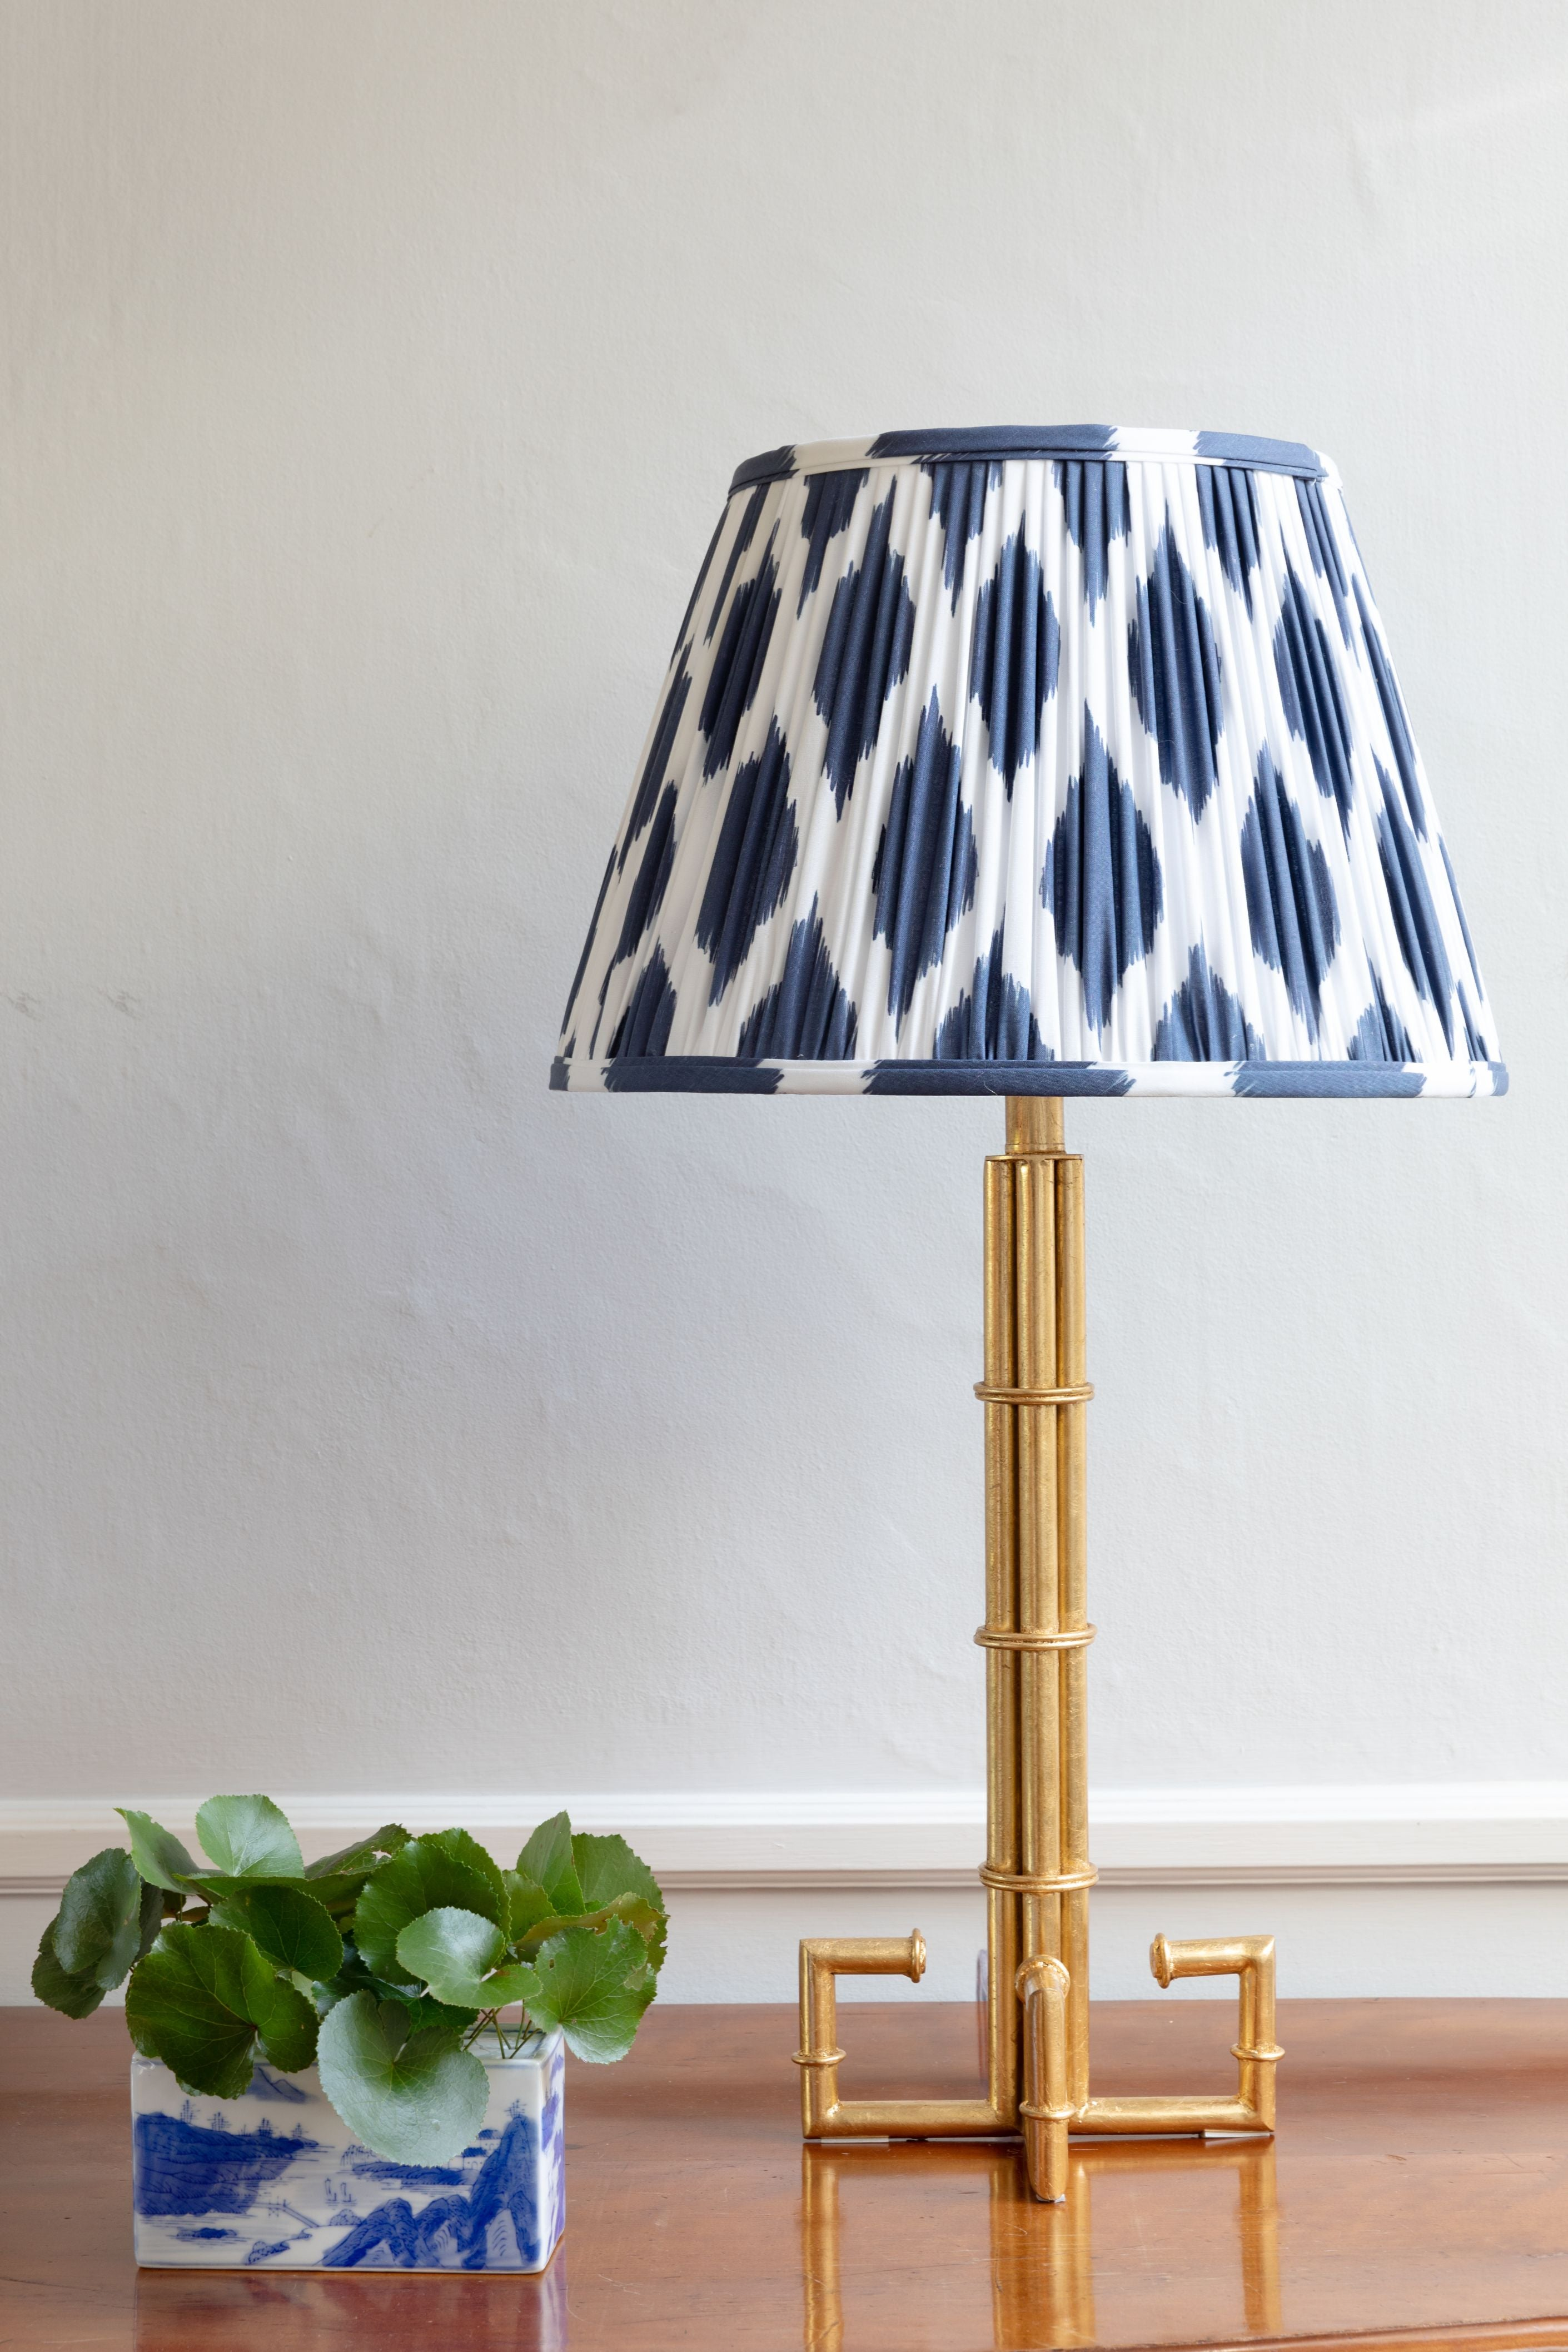 Navy blue patterned lamp shade on bronze stand.